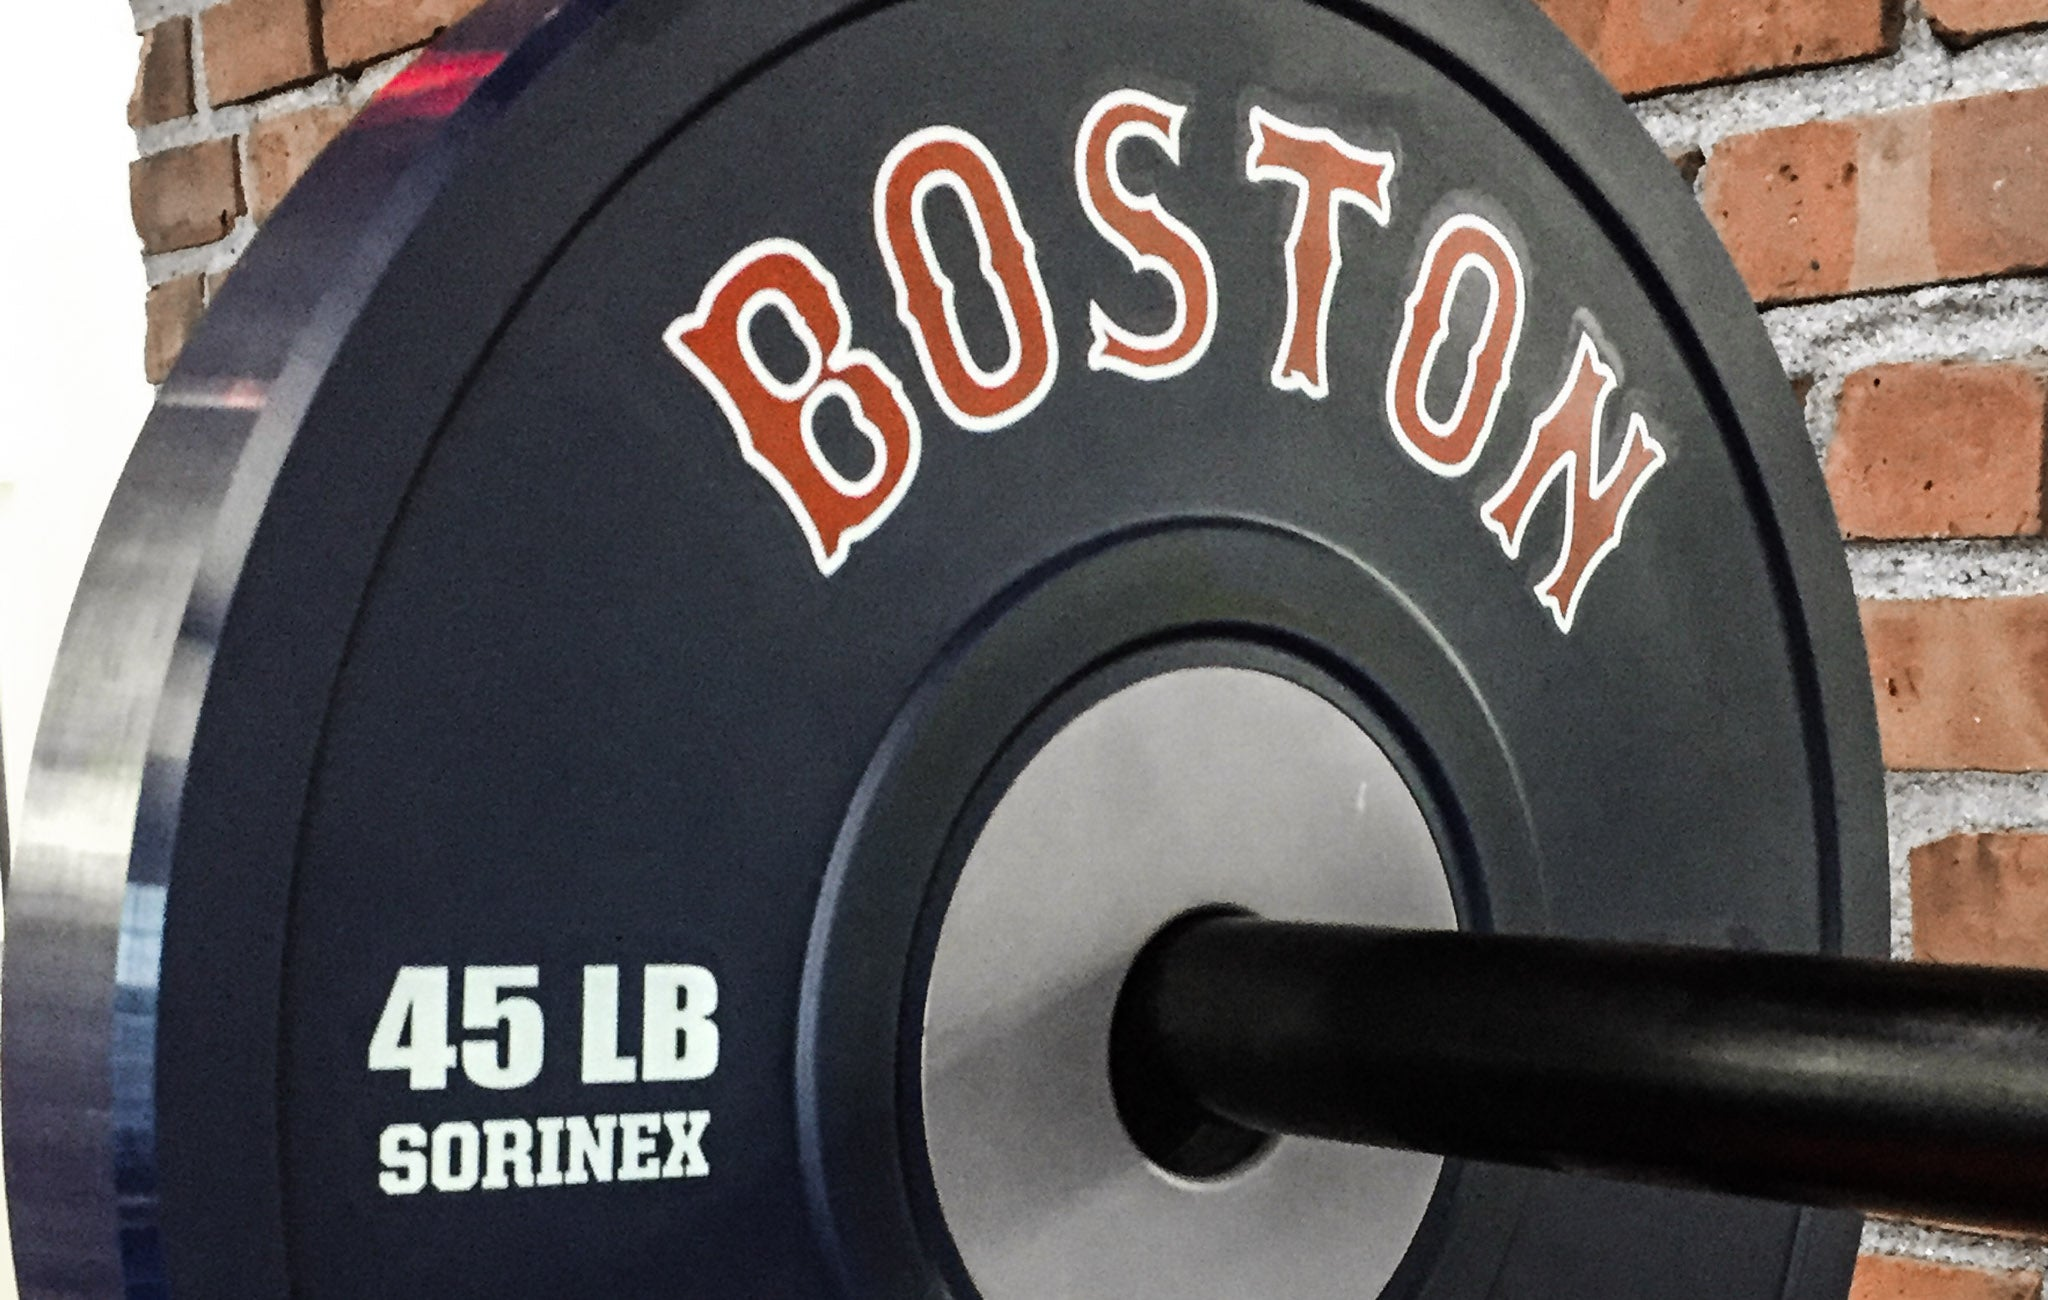 Boston Red Sox Strength and Conditioning